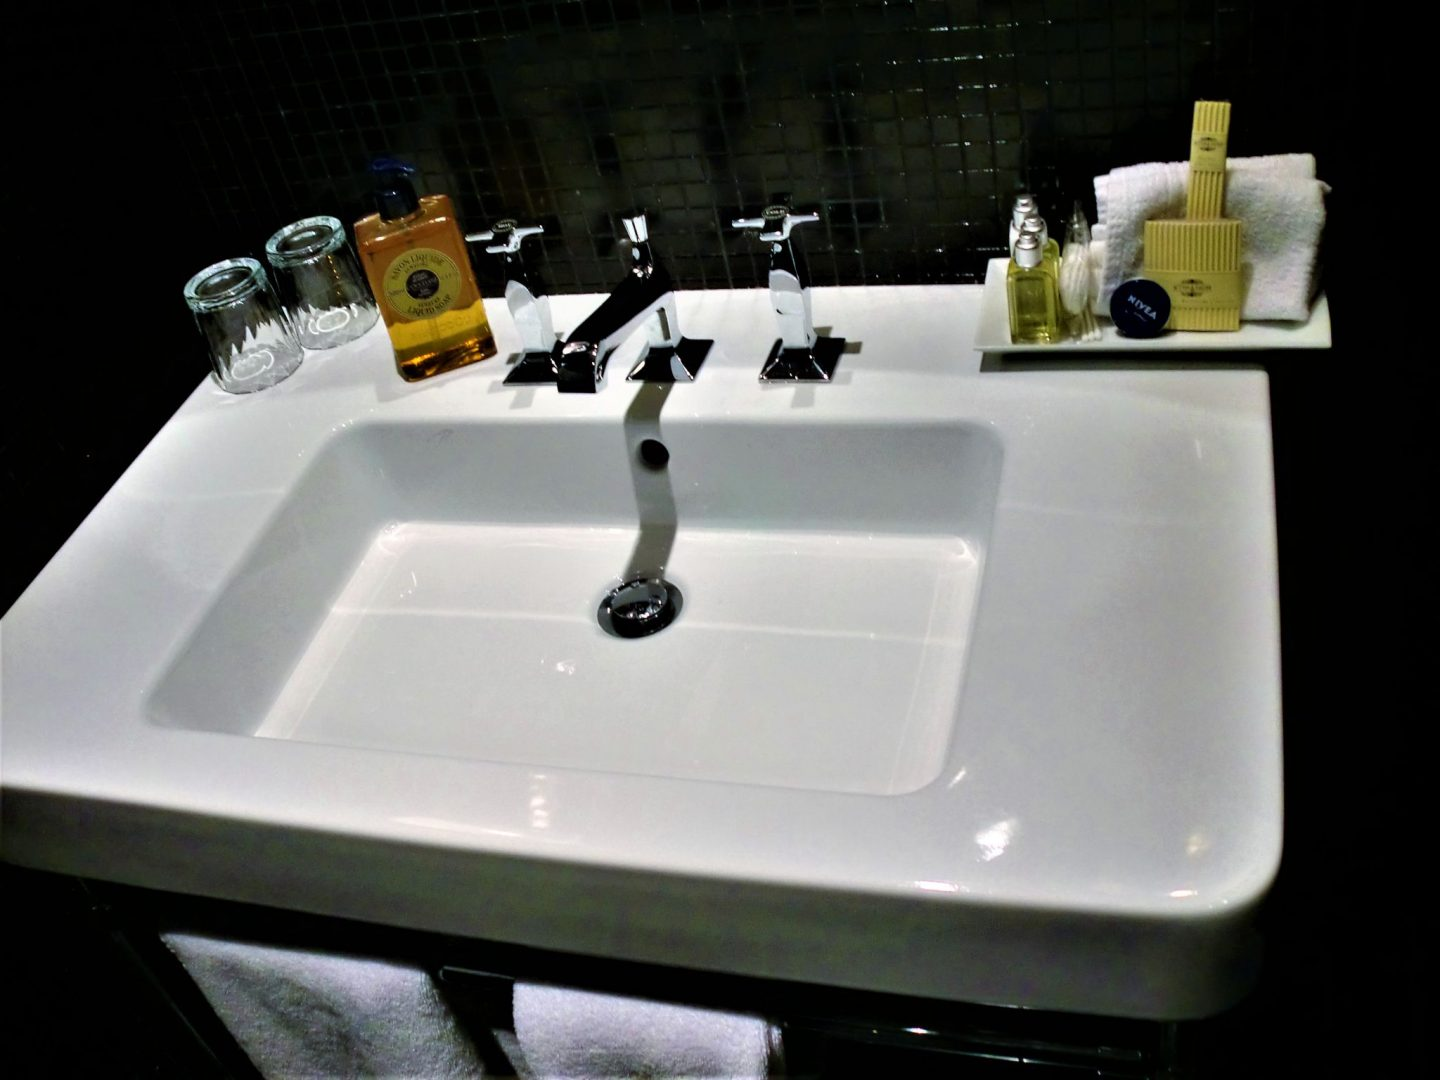 Boutique hotel in Vienna toiletries 1440x1080 - Boutique hotel in Vienna: 1 amazing place for your stay